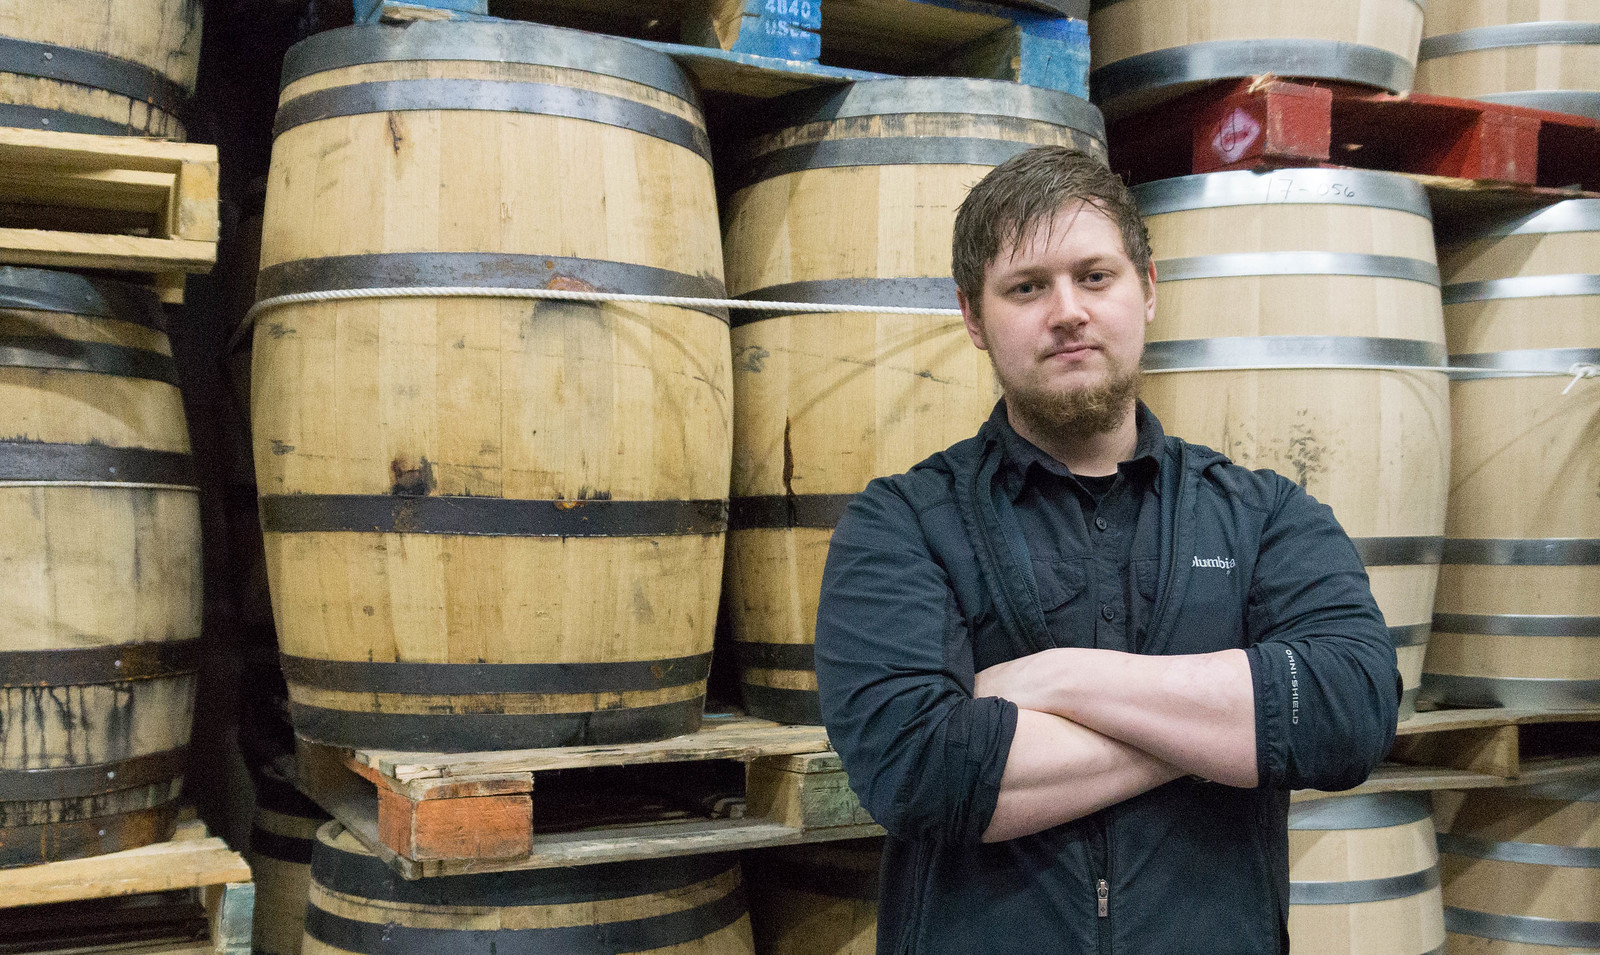 Distiller Andrew Holt in Front of Barrels Full of Whiskey - Sugarlands Distilling, Gatlinburg, Tenn.